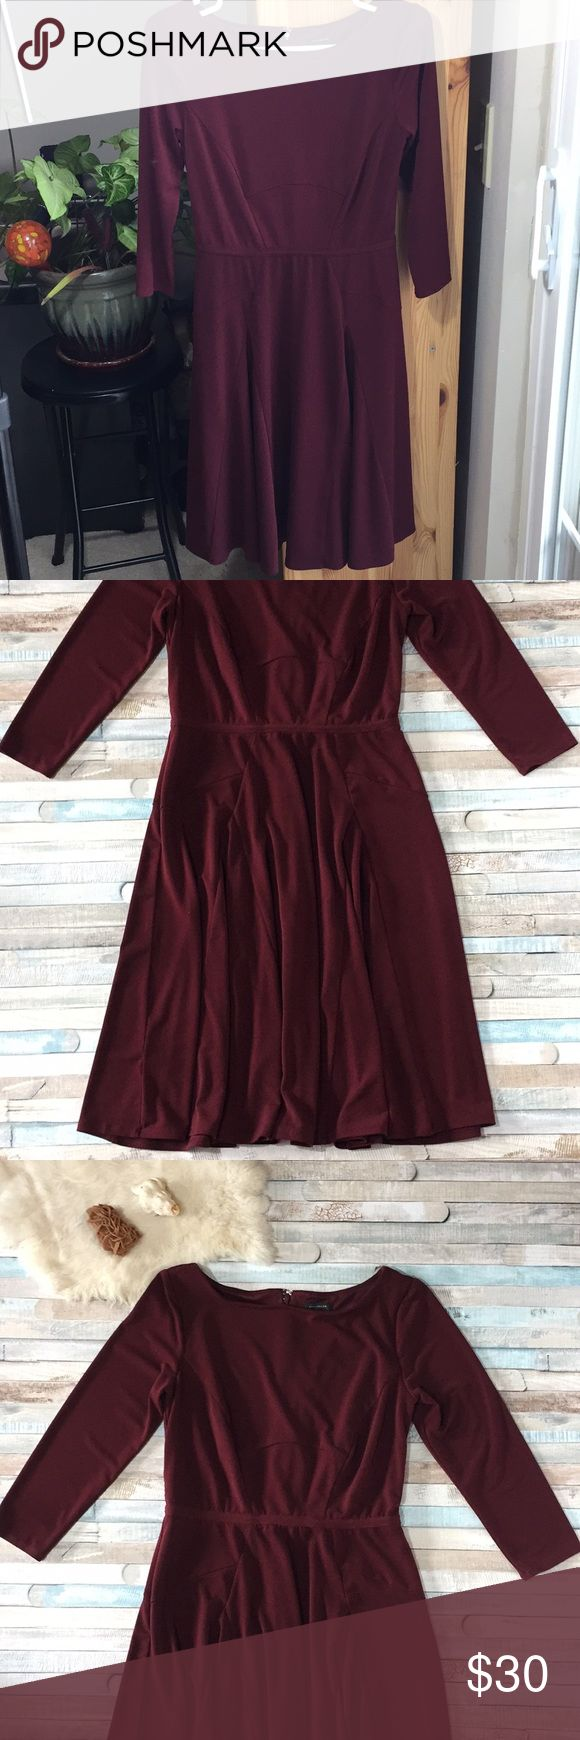 Ann Taylor Burgundy Fit and Flare Dress Size 2 Fabric is a polyester/spandex blend and is very stretchy. Size 2, bust measures 15.5in, Waist 13in, total length 37in. Gorgeous burgundy color, bracelet length sleeves, and a boat neck. Make an offer!! Ann Taylor Dresses Midi